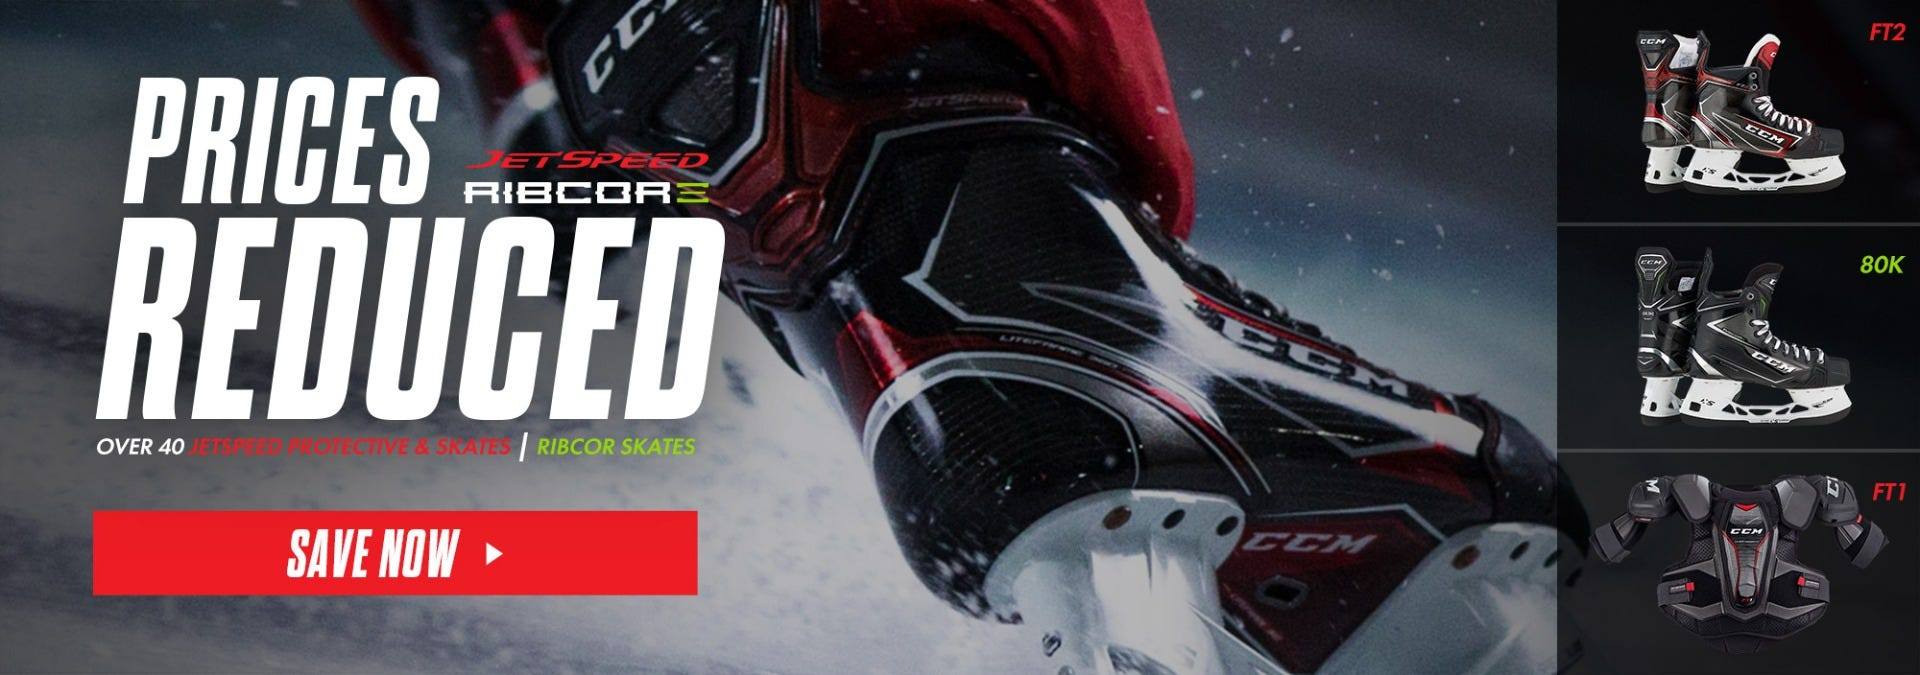 Save up to $190 on over 40 CCM JetSpeed protective & skates and RibCor skates